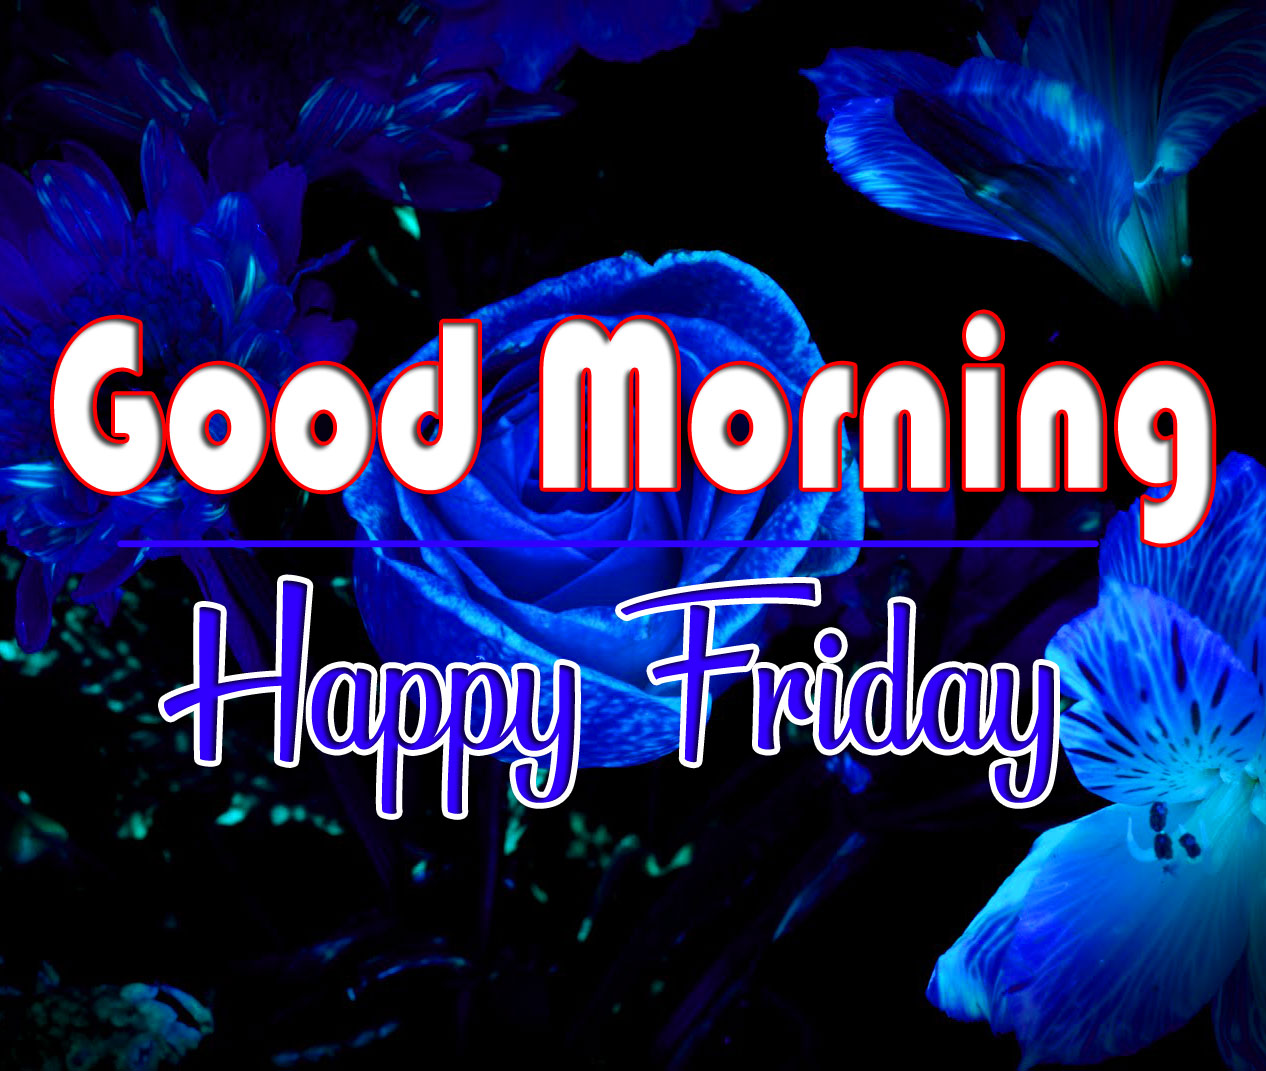 Free HD friday Good morning Wishes Imagers